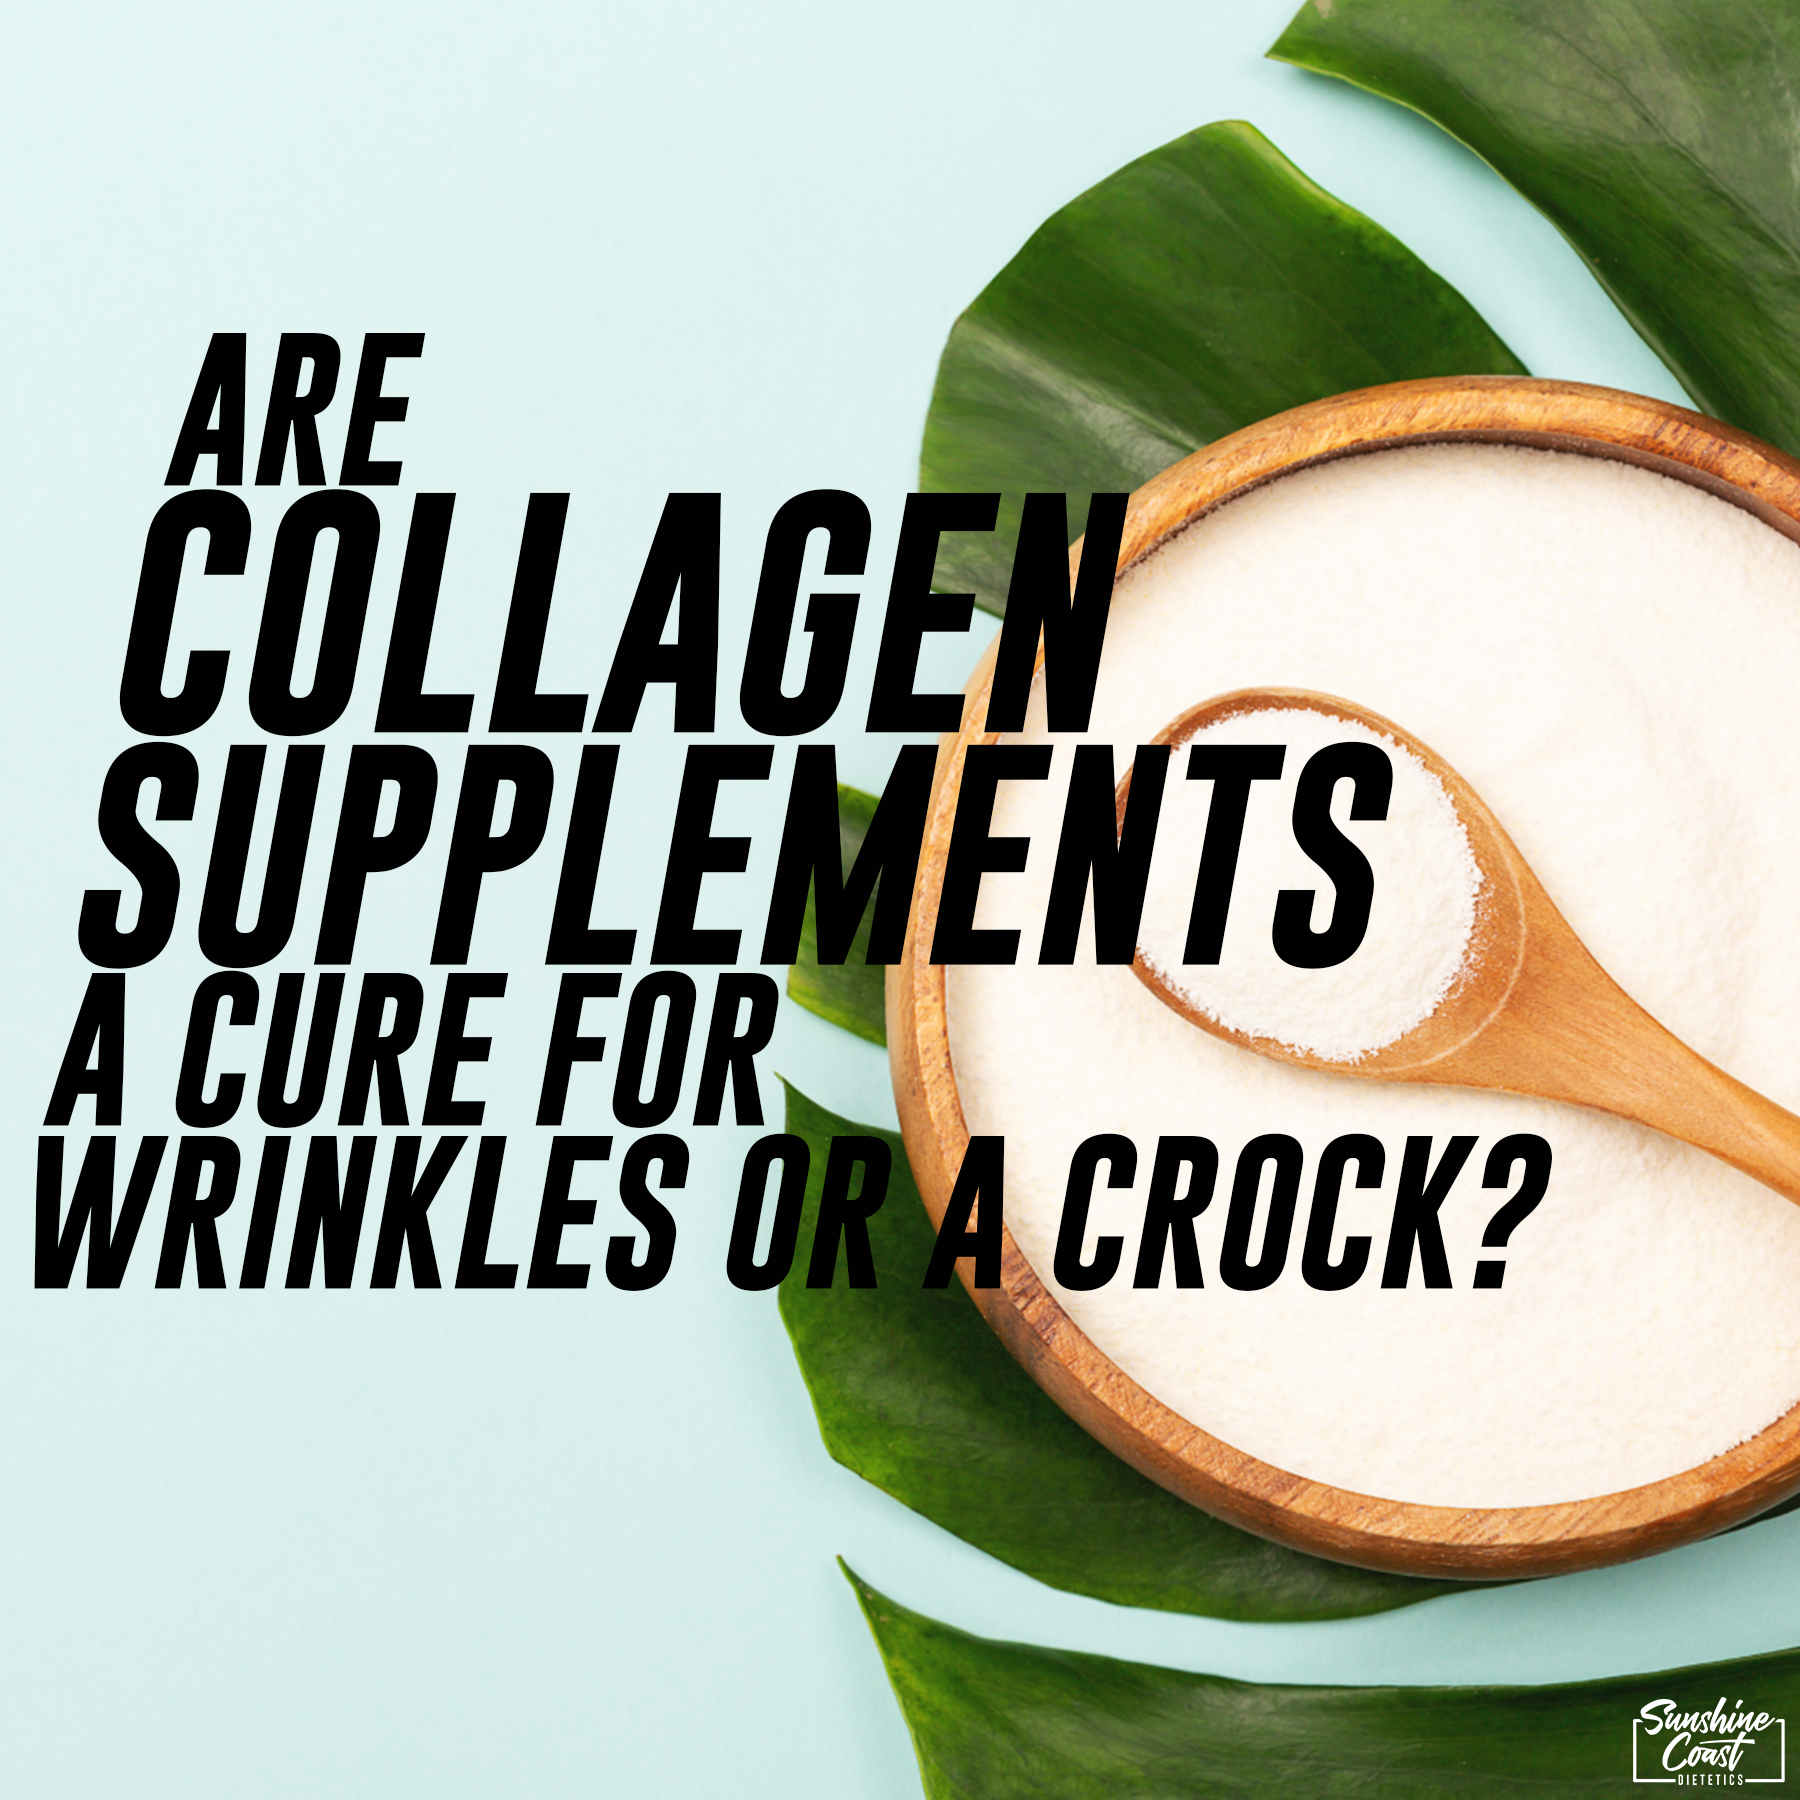 Are Collagen Supplements a Cure For Wrinkles or a Crock?